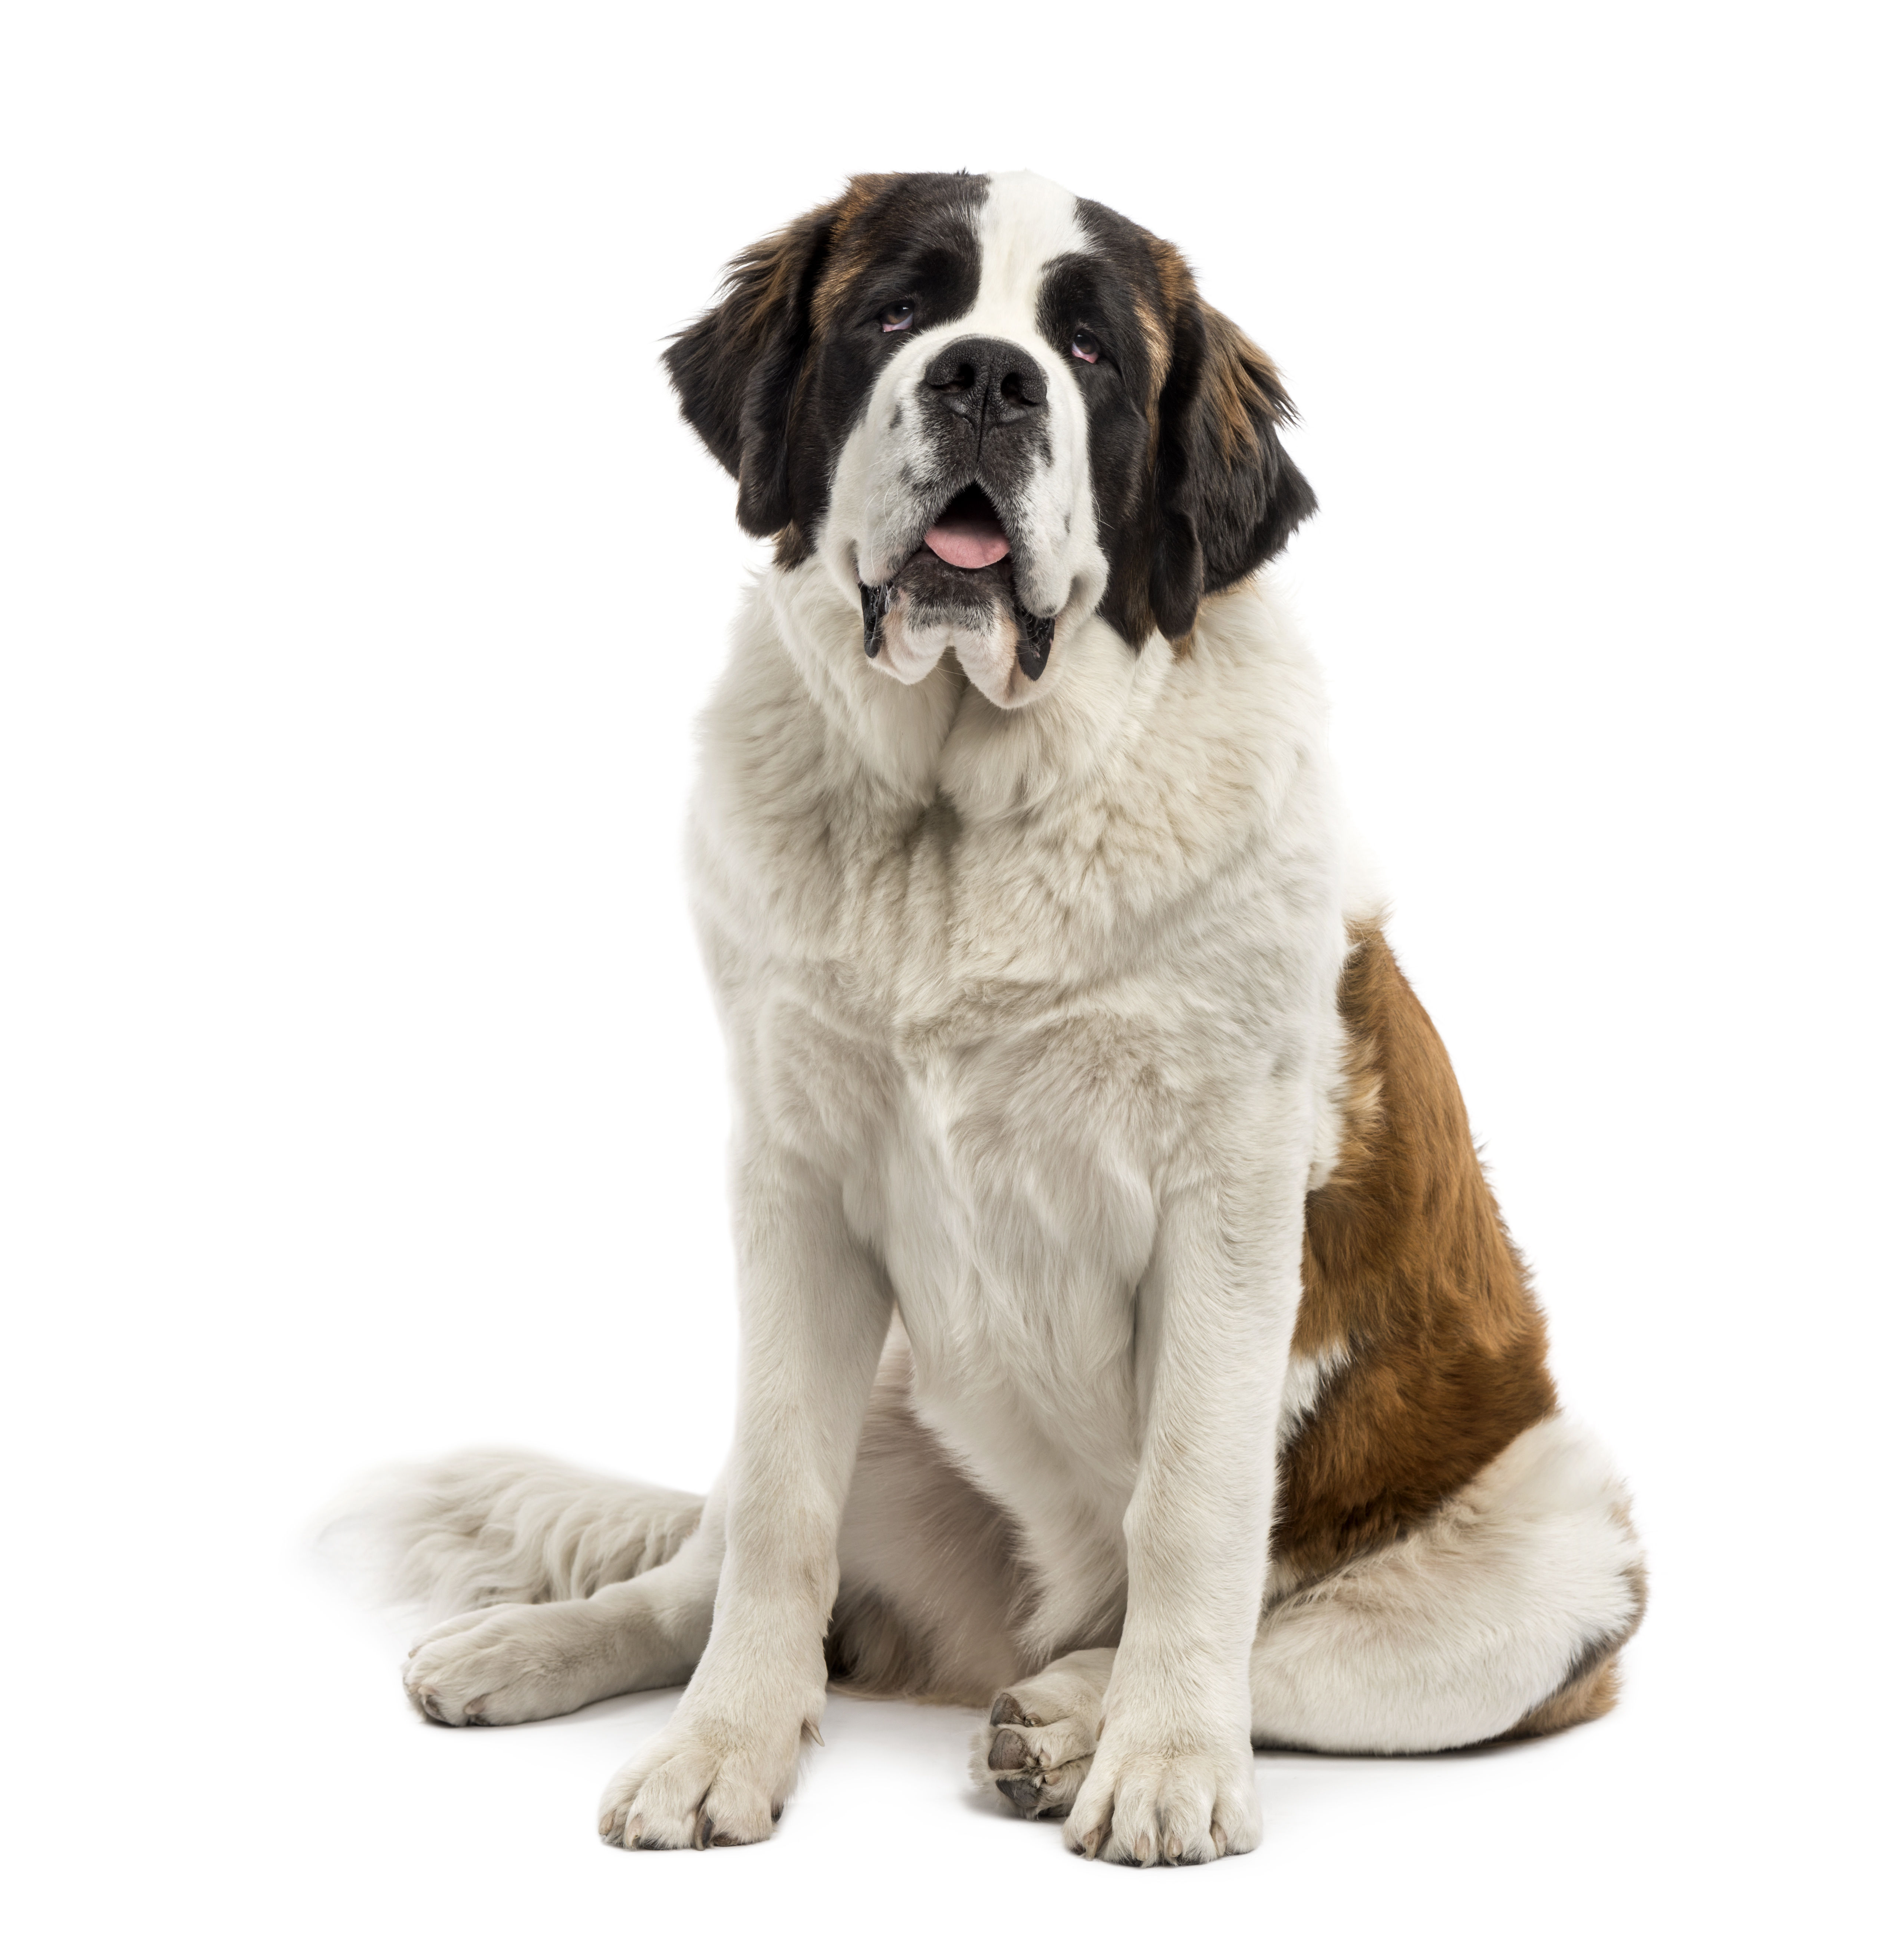 Saint Bernard dog sitting in front of white backgroud